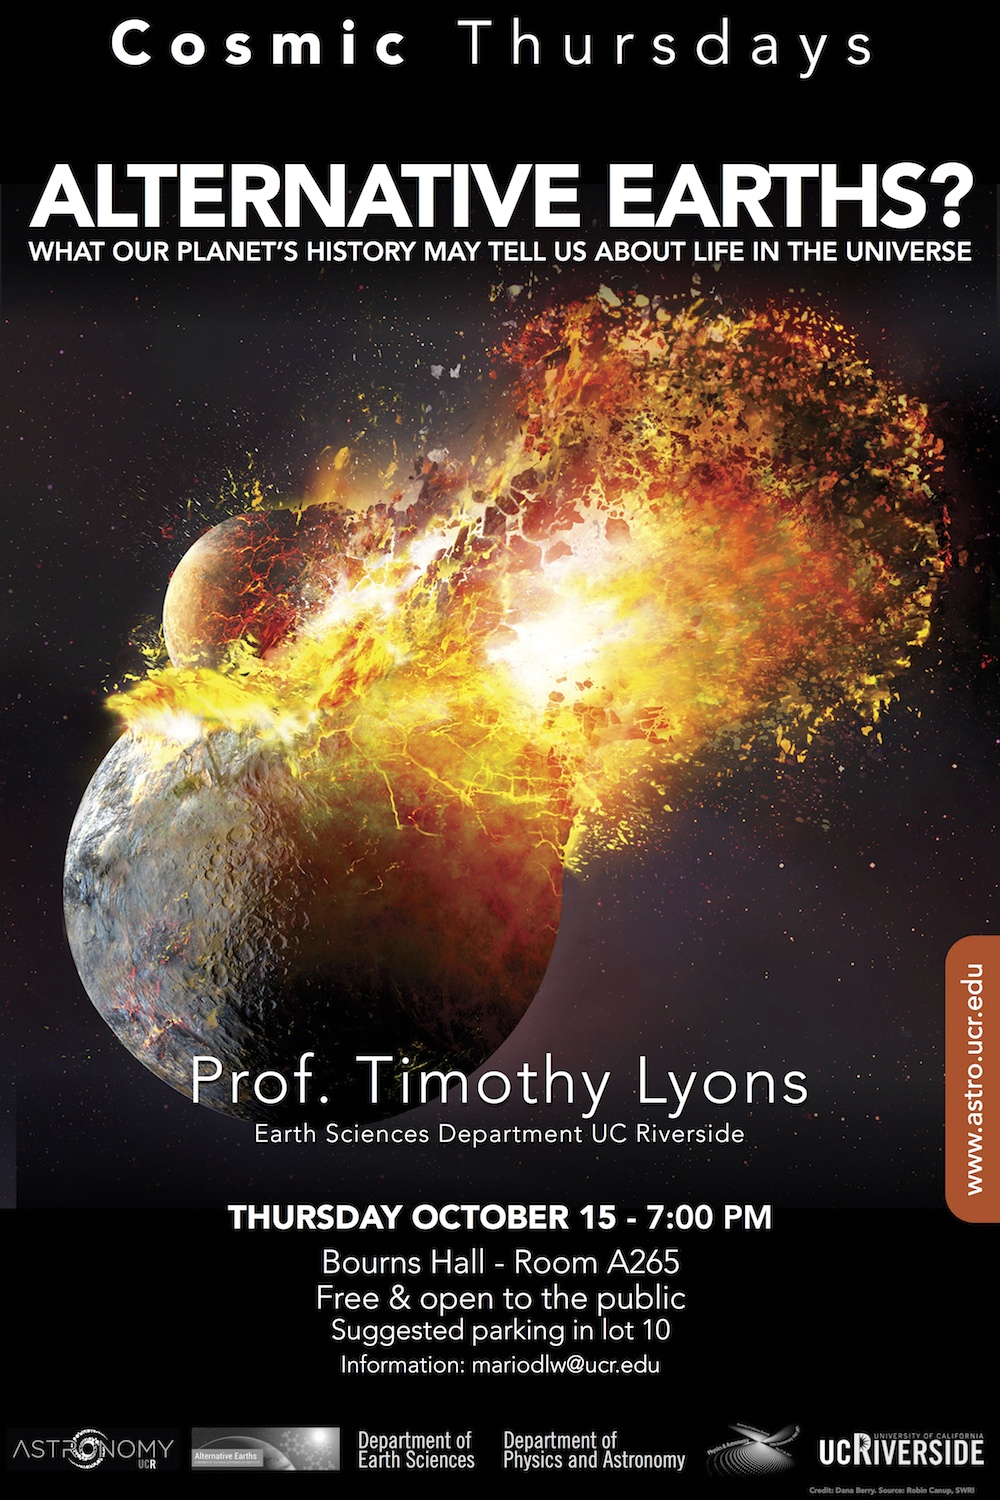 Cosmic Thursdays Public Talks Restarting